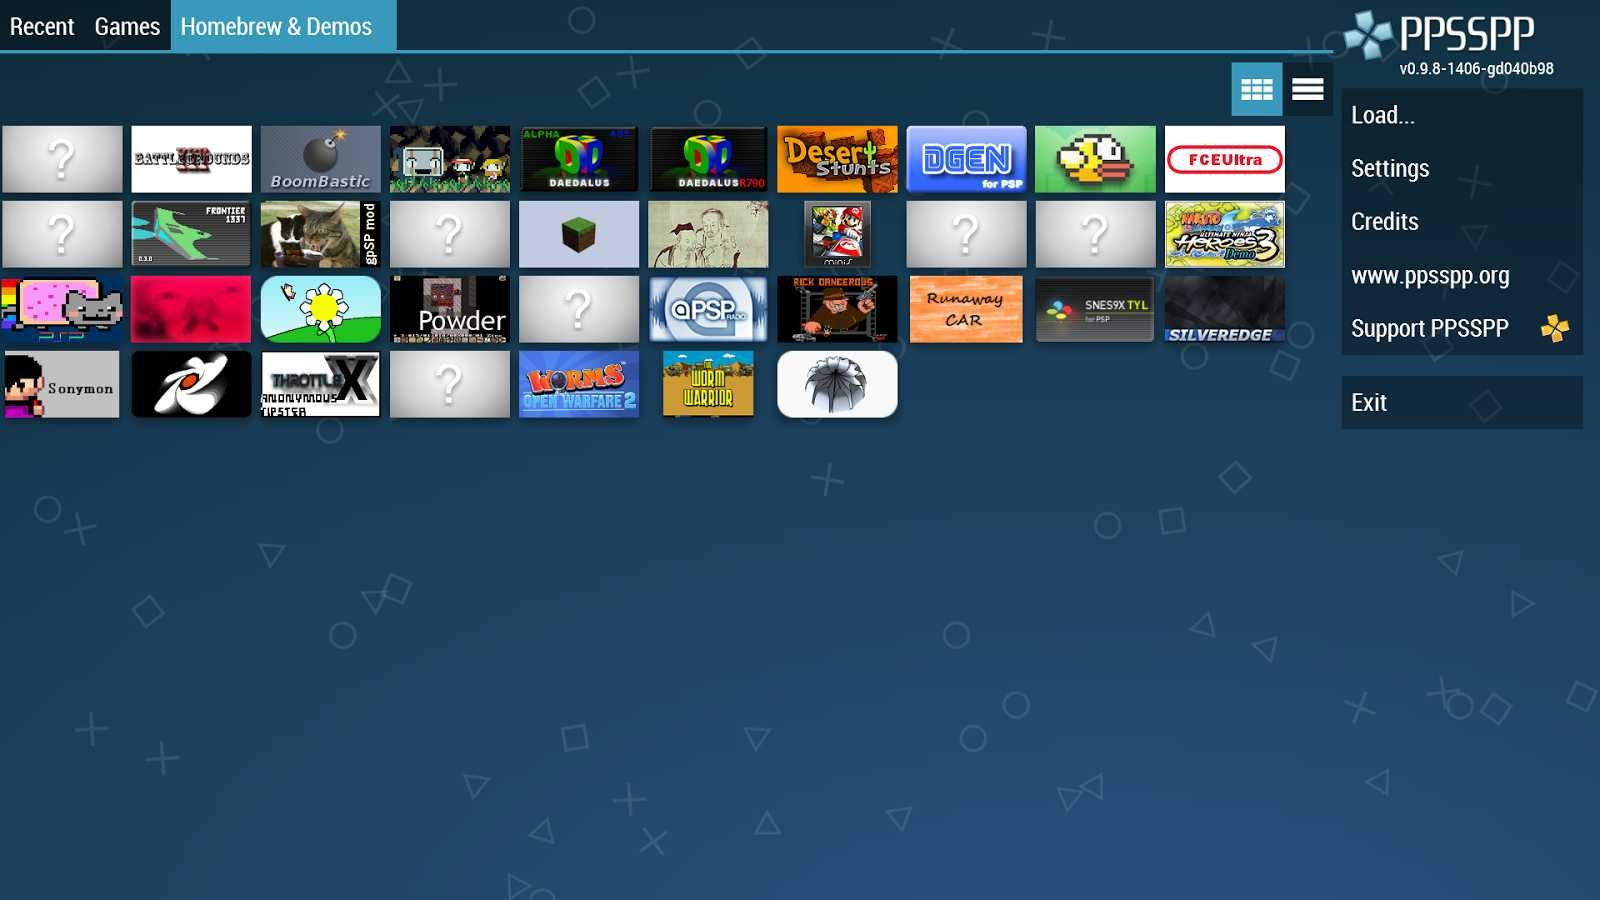 Juegos PSP en Android con PPSSPP